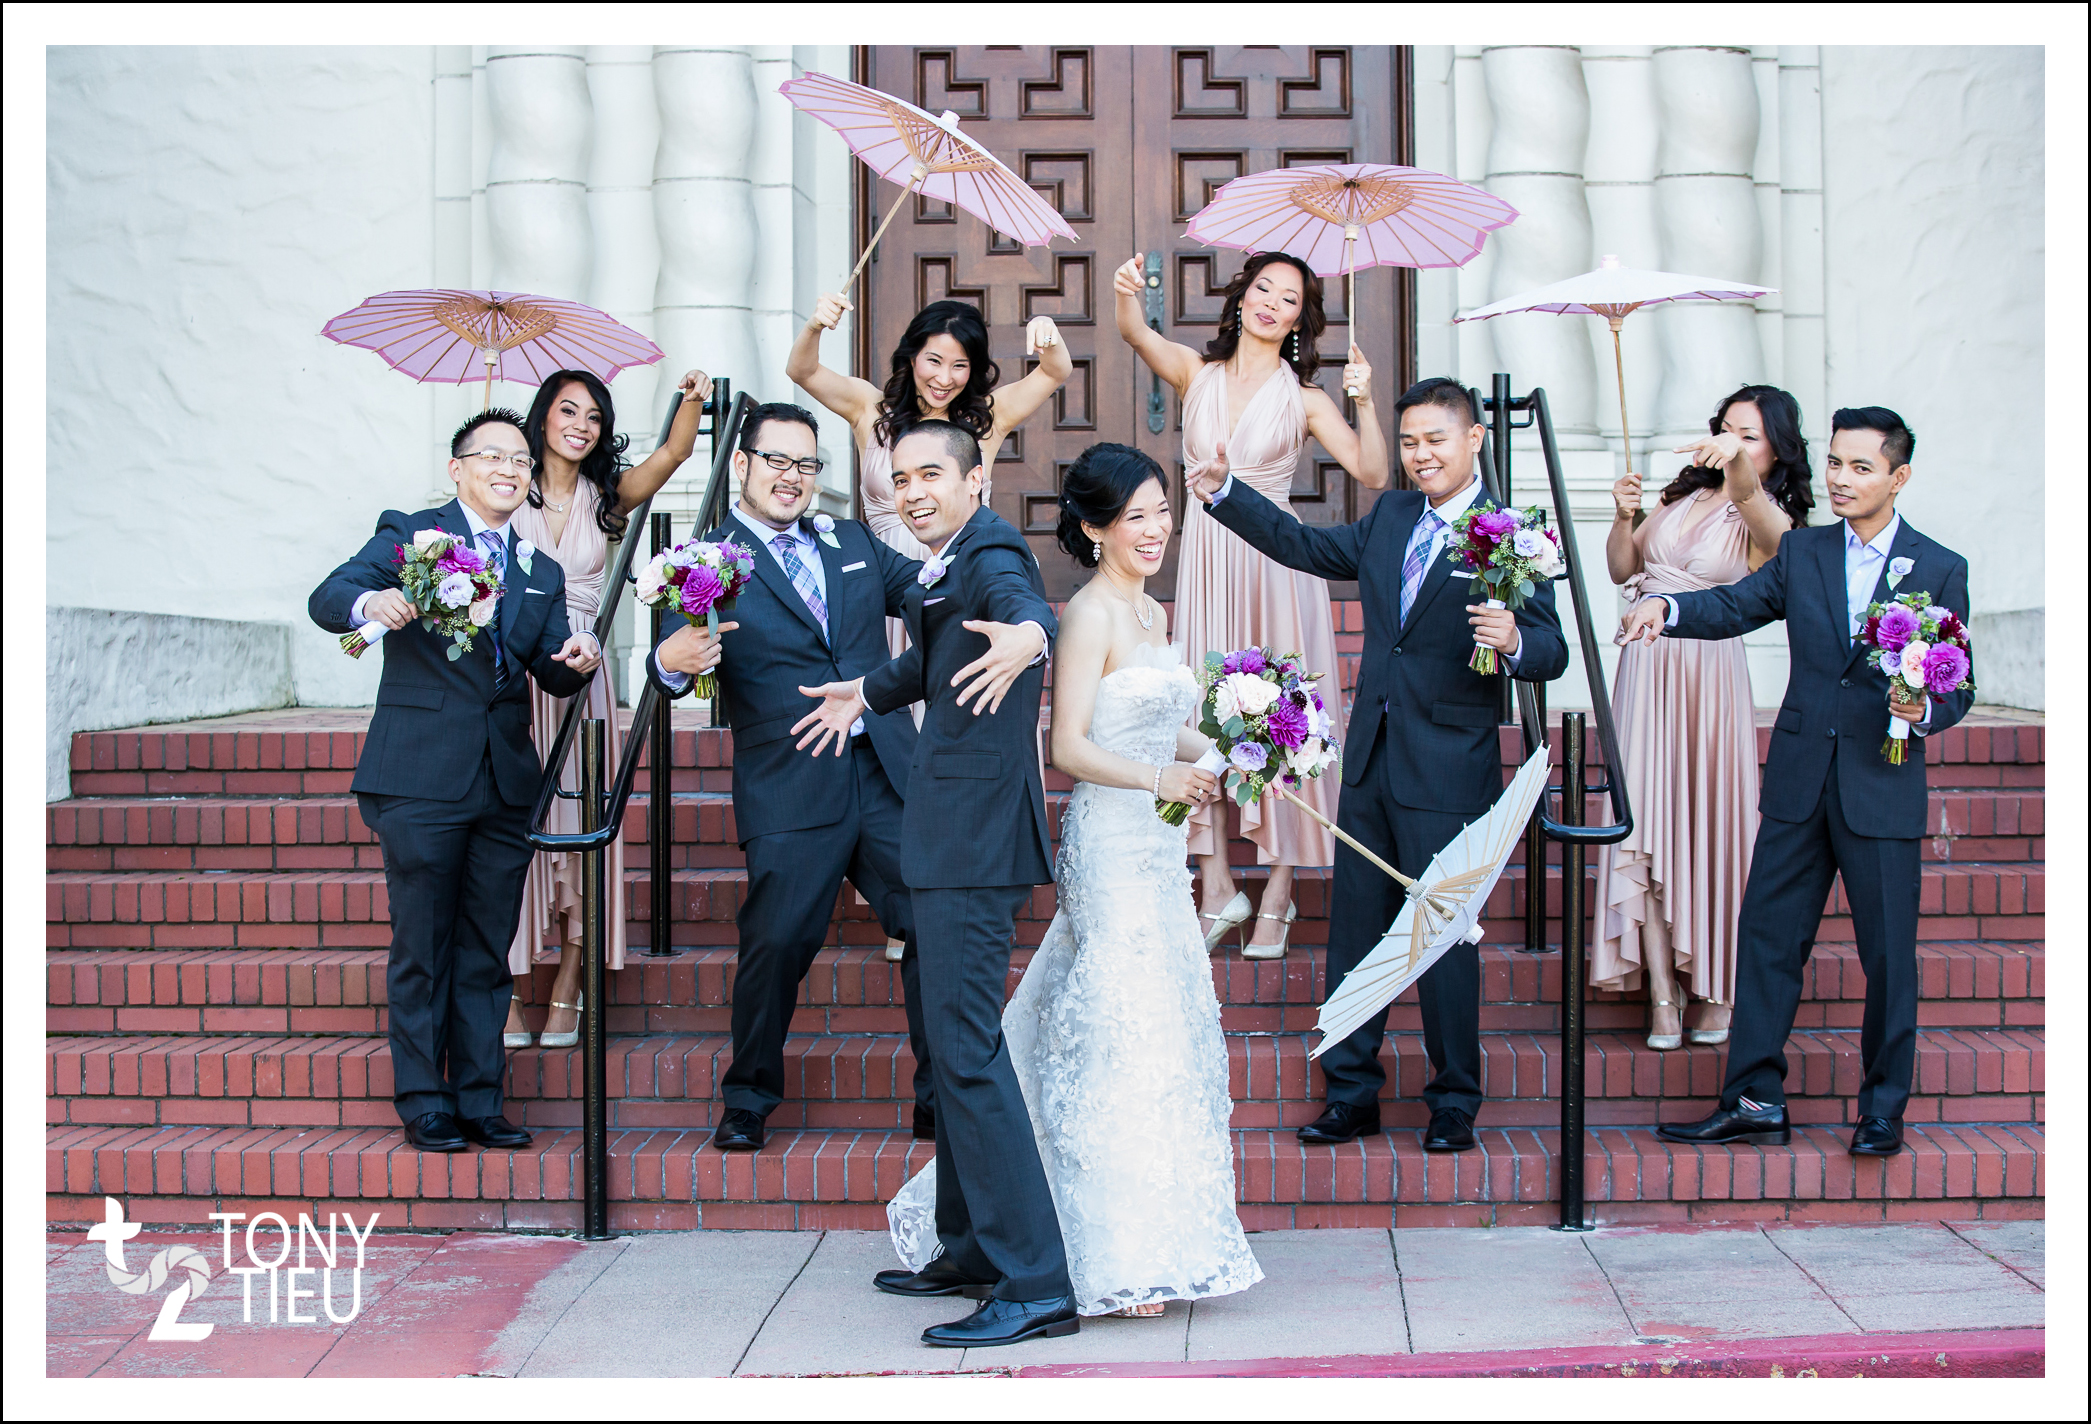 Tony_Tieu_Connie_Wedding_8